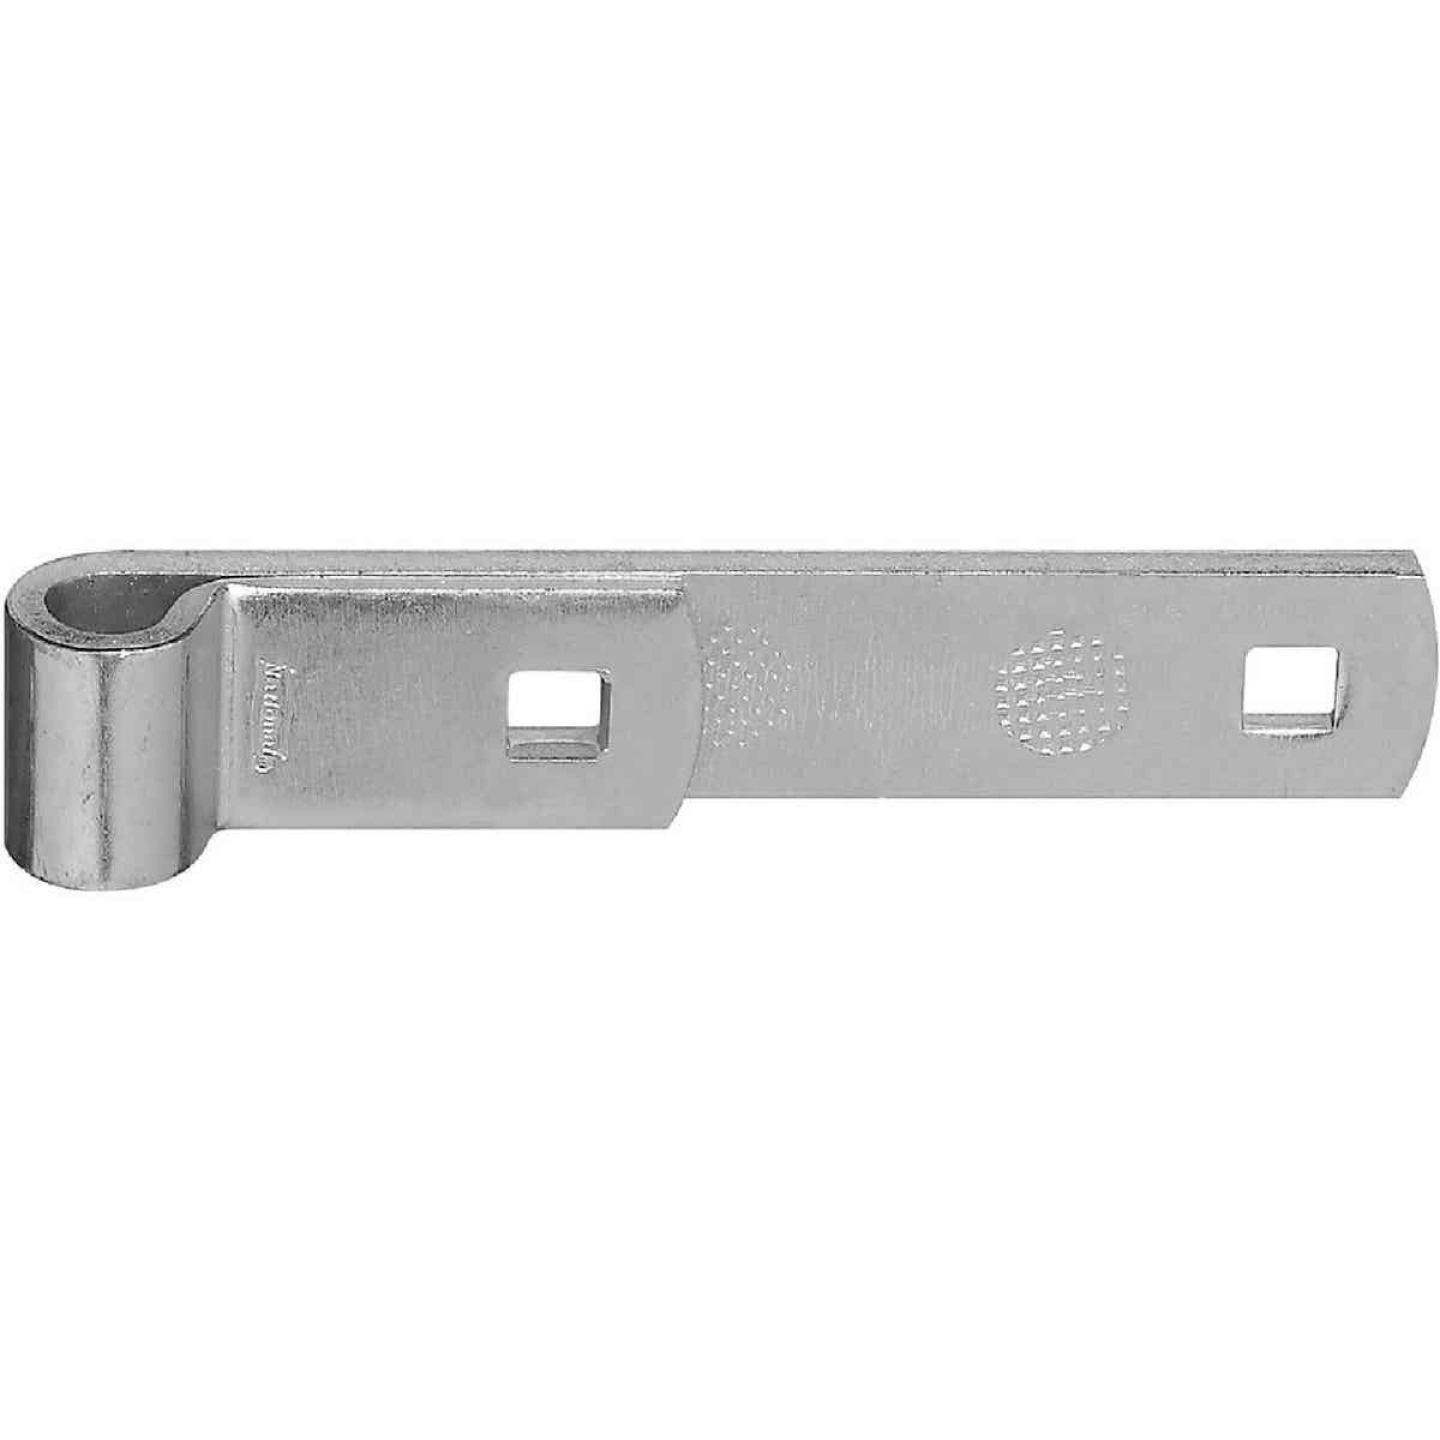 National 6 In. Zinc Hinge Strap Image 1